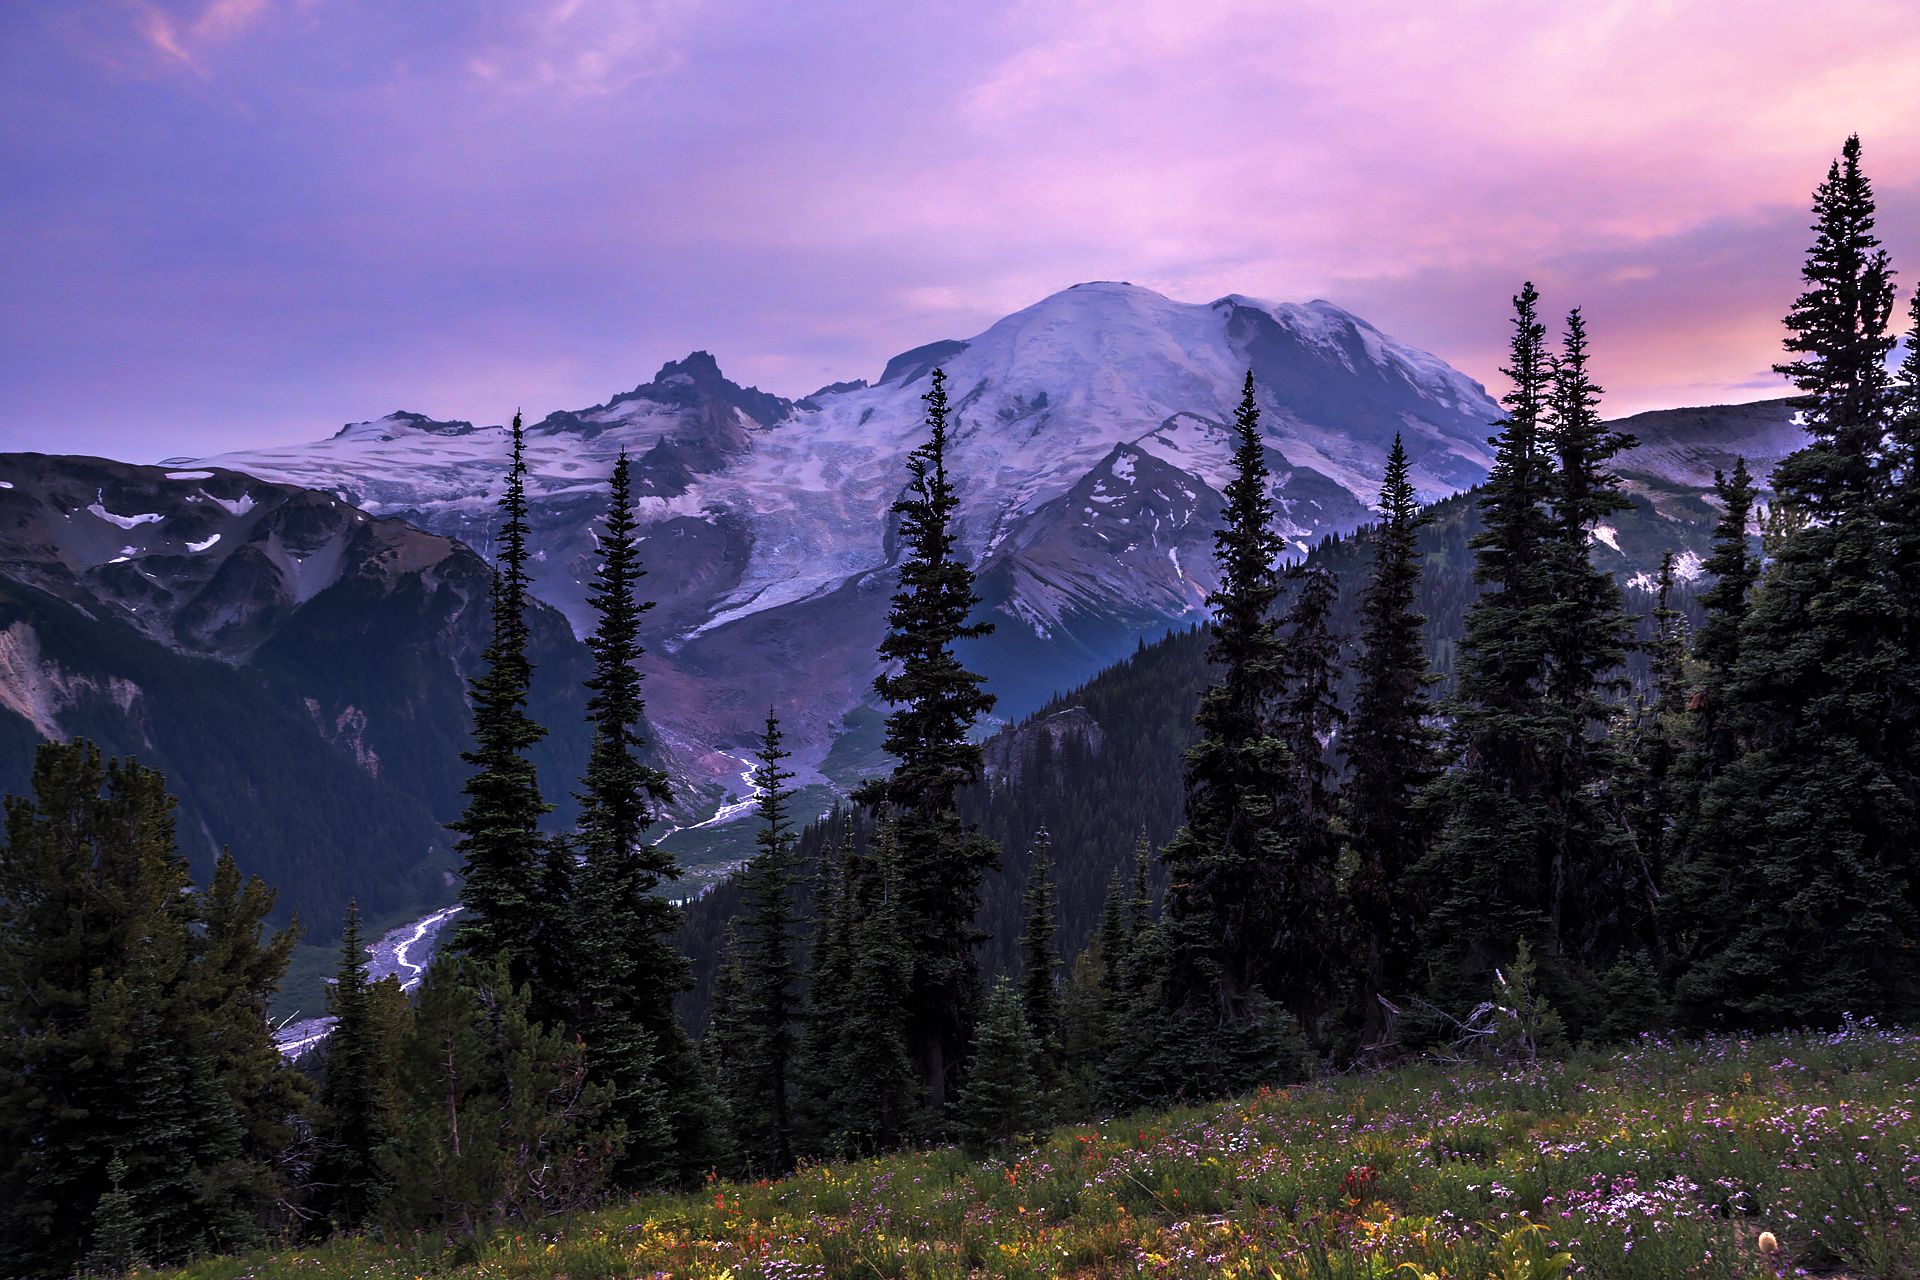 20130822-Rainier-Day-2---Sunrise-1193.jpg